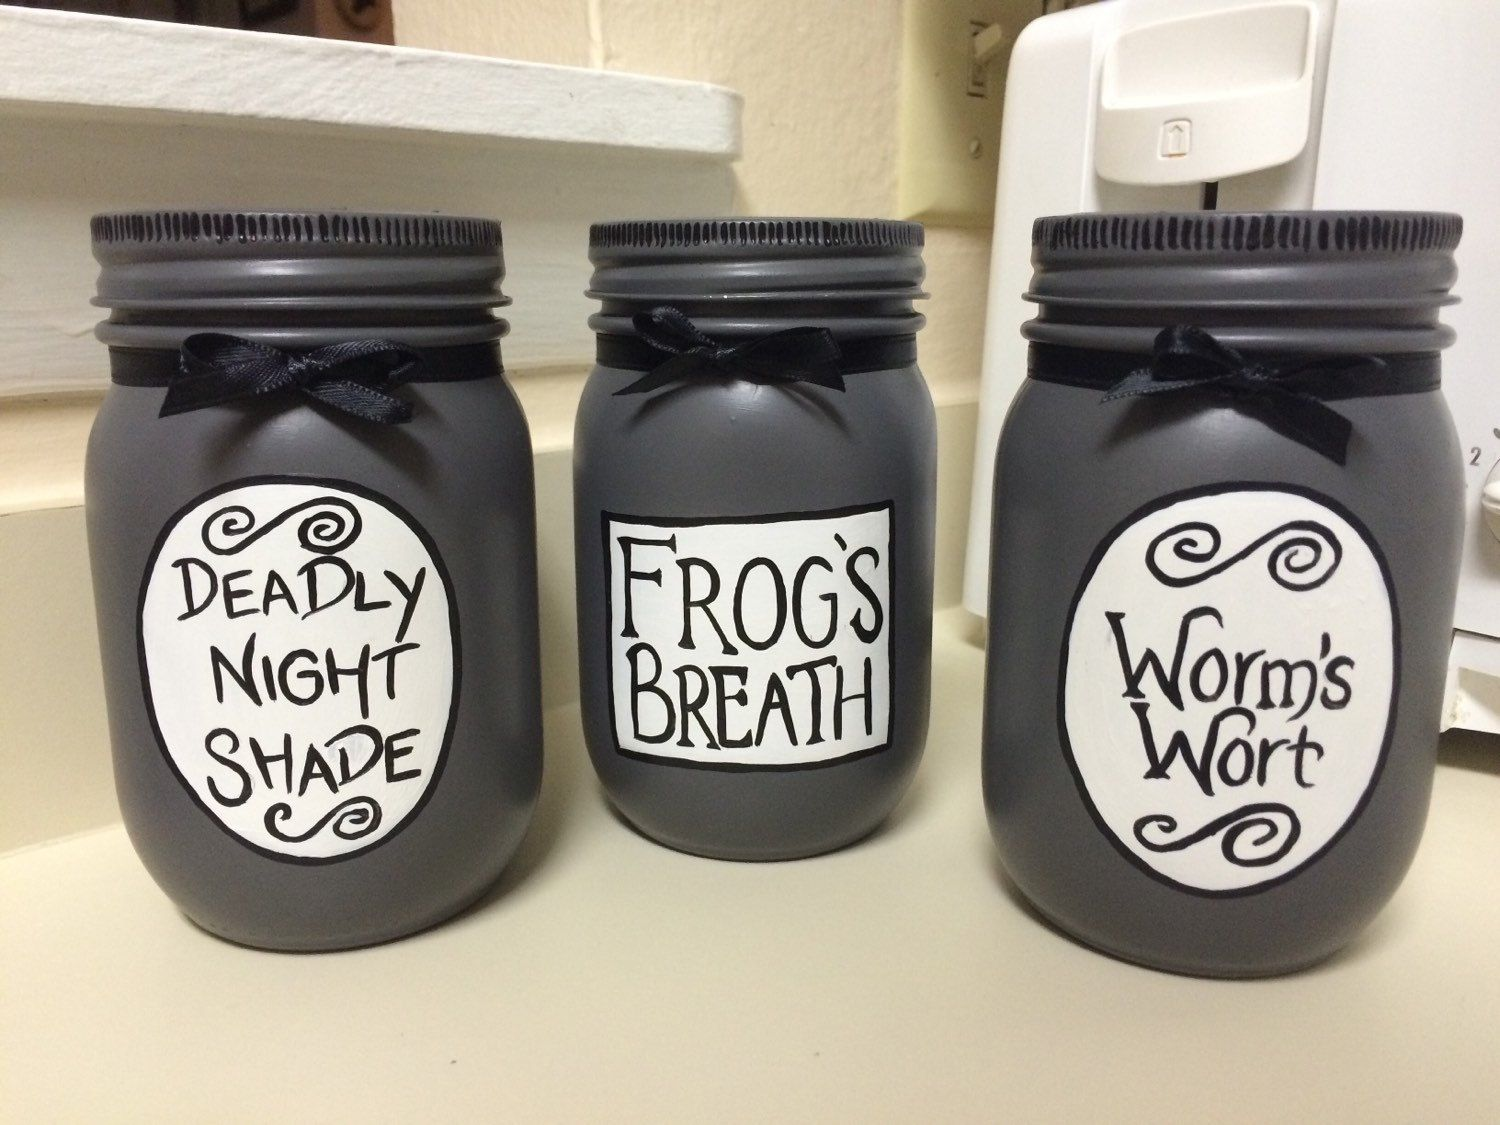 Nightmare Before Christmas Sallys Potions Deadly Night Shade Nightmare Before Christmas Halloween Nightmare Before Christmas Decorations Halloween Decorations